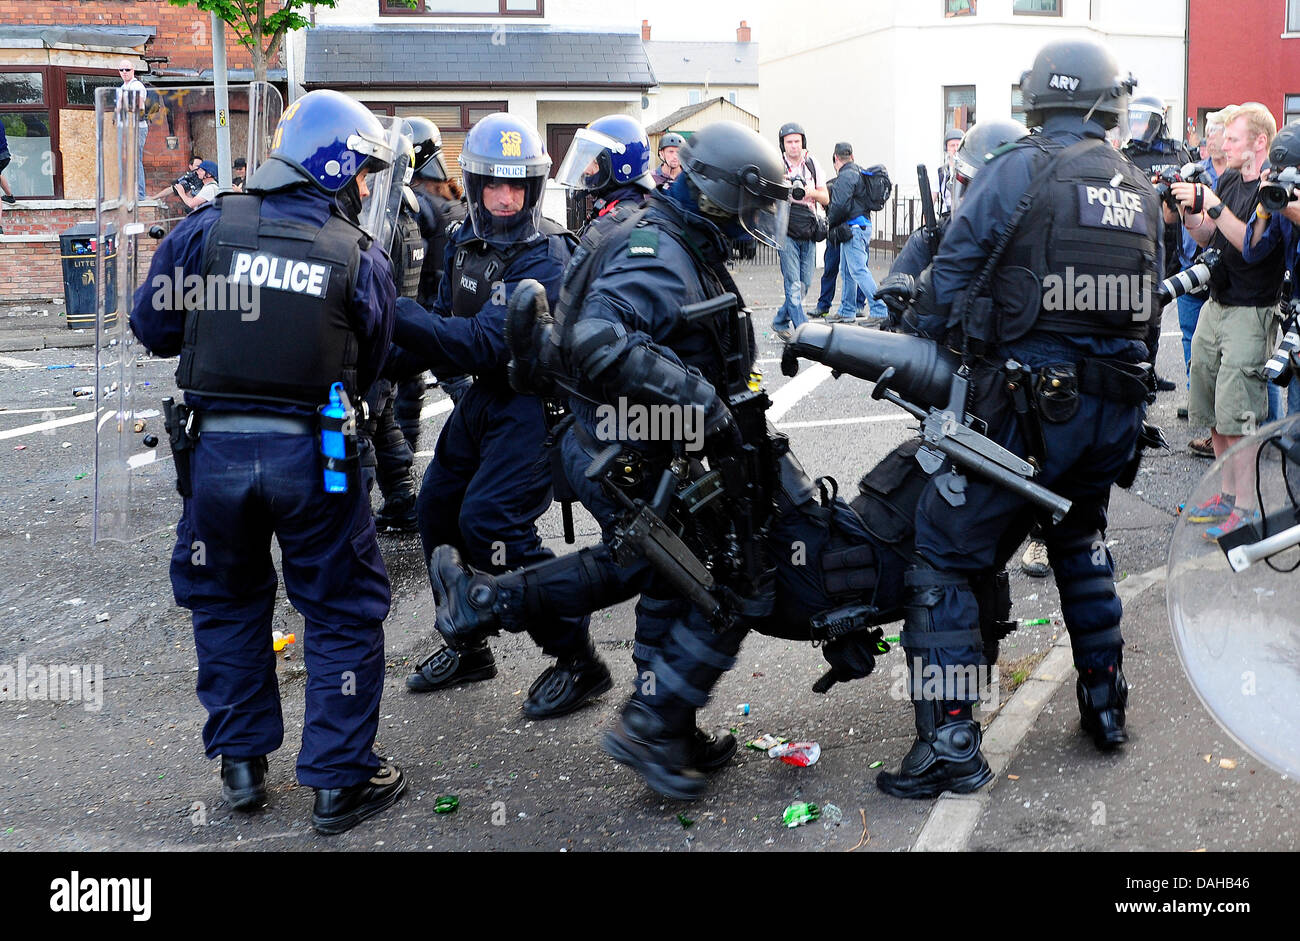 Belfast, UK. 12th July, 2013. A total 32 police were injured in what Chief Constable Matt Baggott described as 'shocking - Stock Image